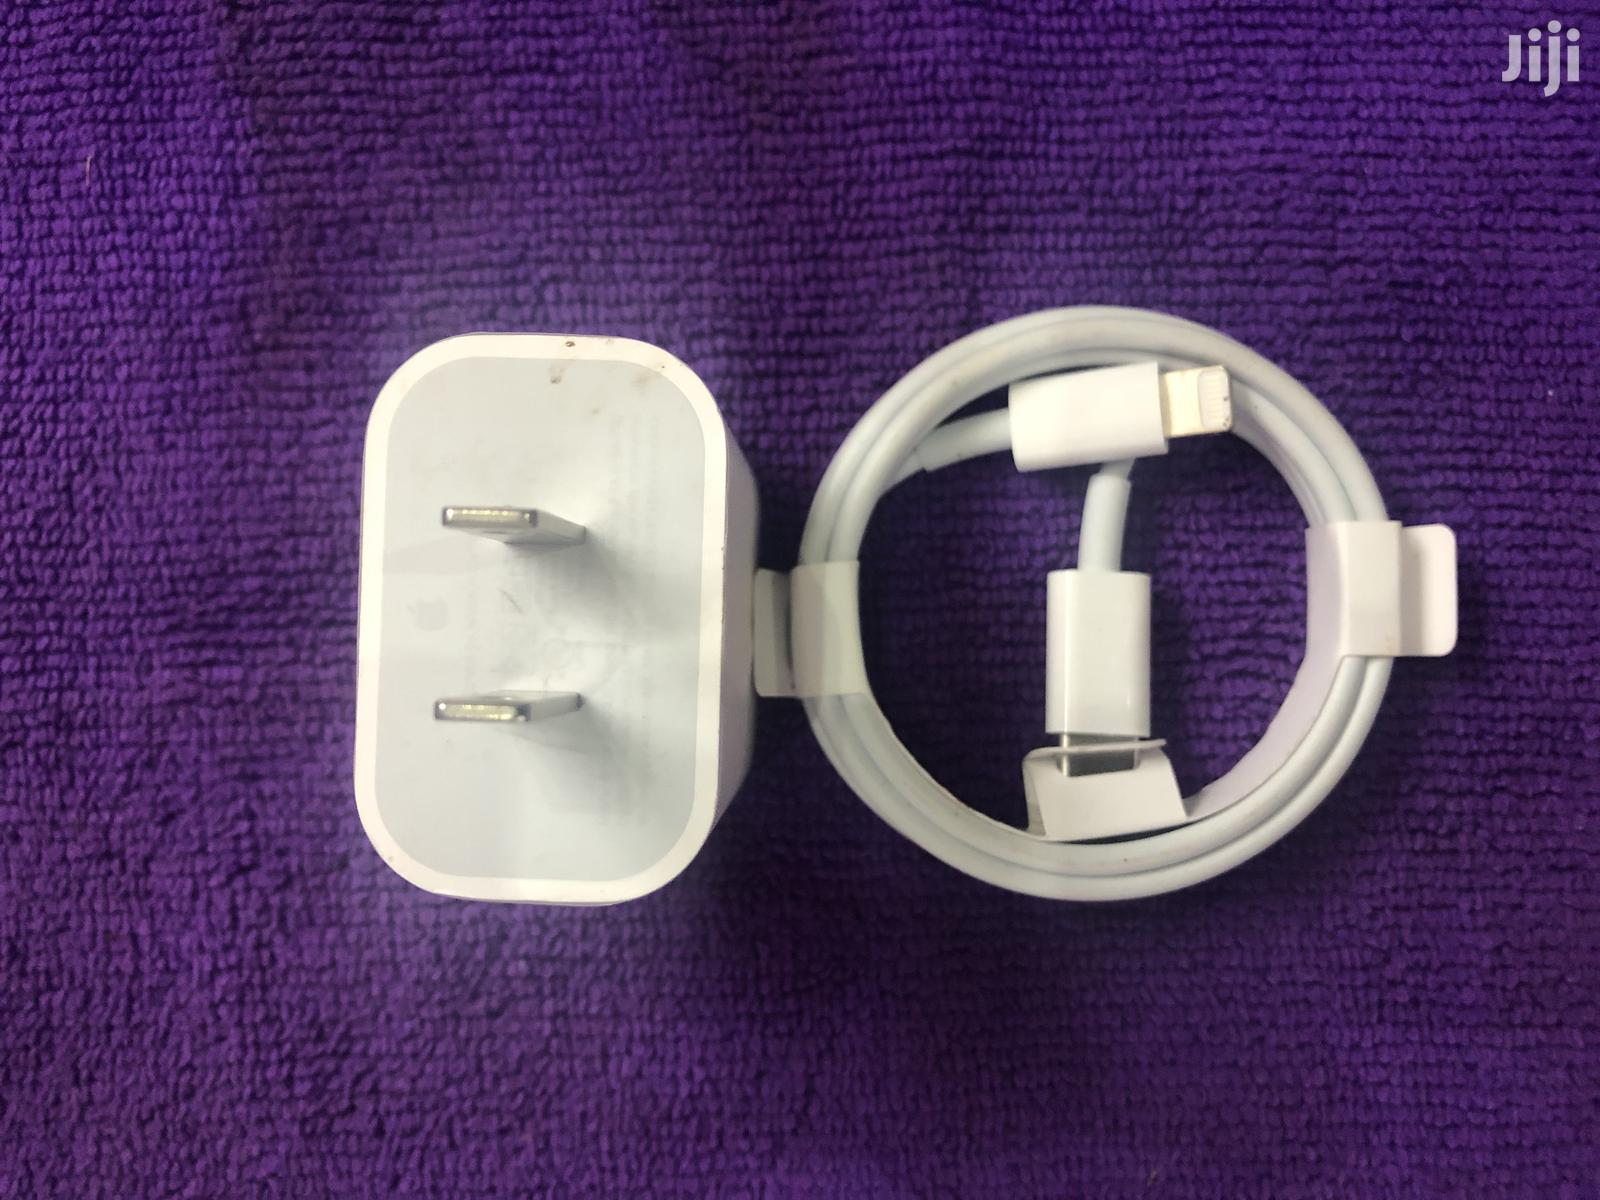 Original iPhone 11 Charger   Accessories for Mobile Phones & Tablets for sale in Kampala, Central Region, Uganda